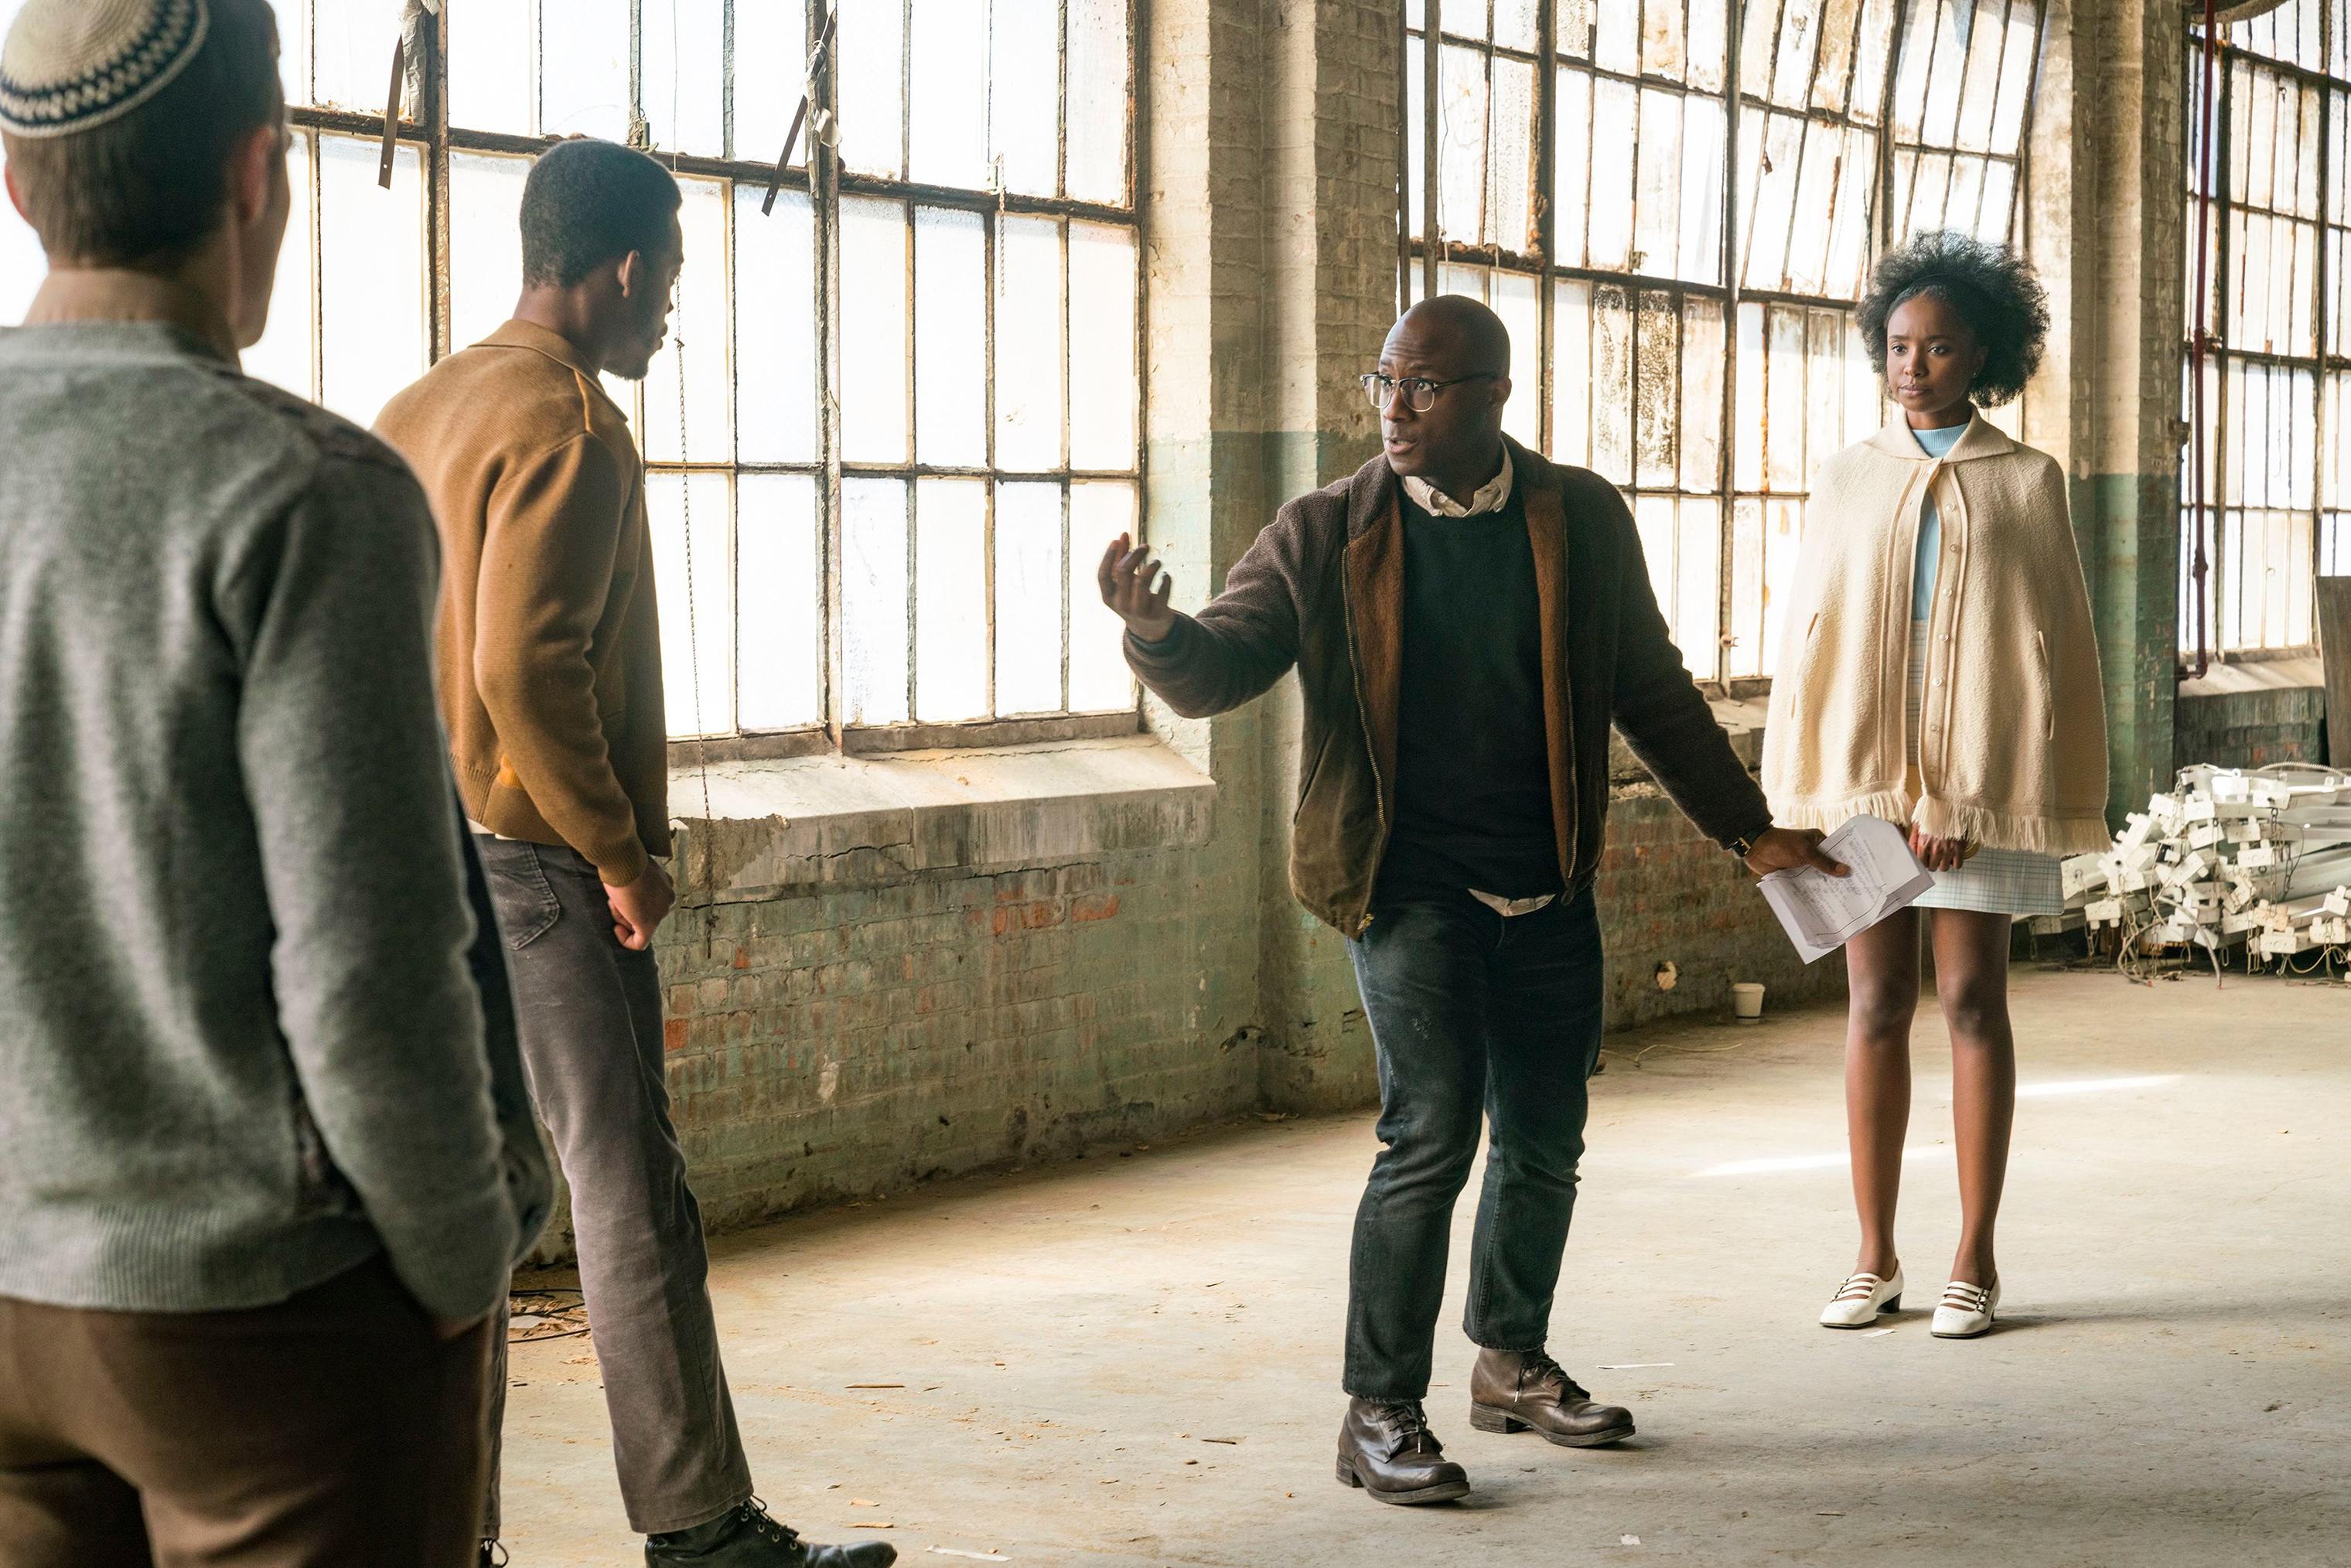 Director Barry Jenkins, center, works with actors Stephan James, left, and KiKi Layne on the set of If Beale Street Could Talk